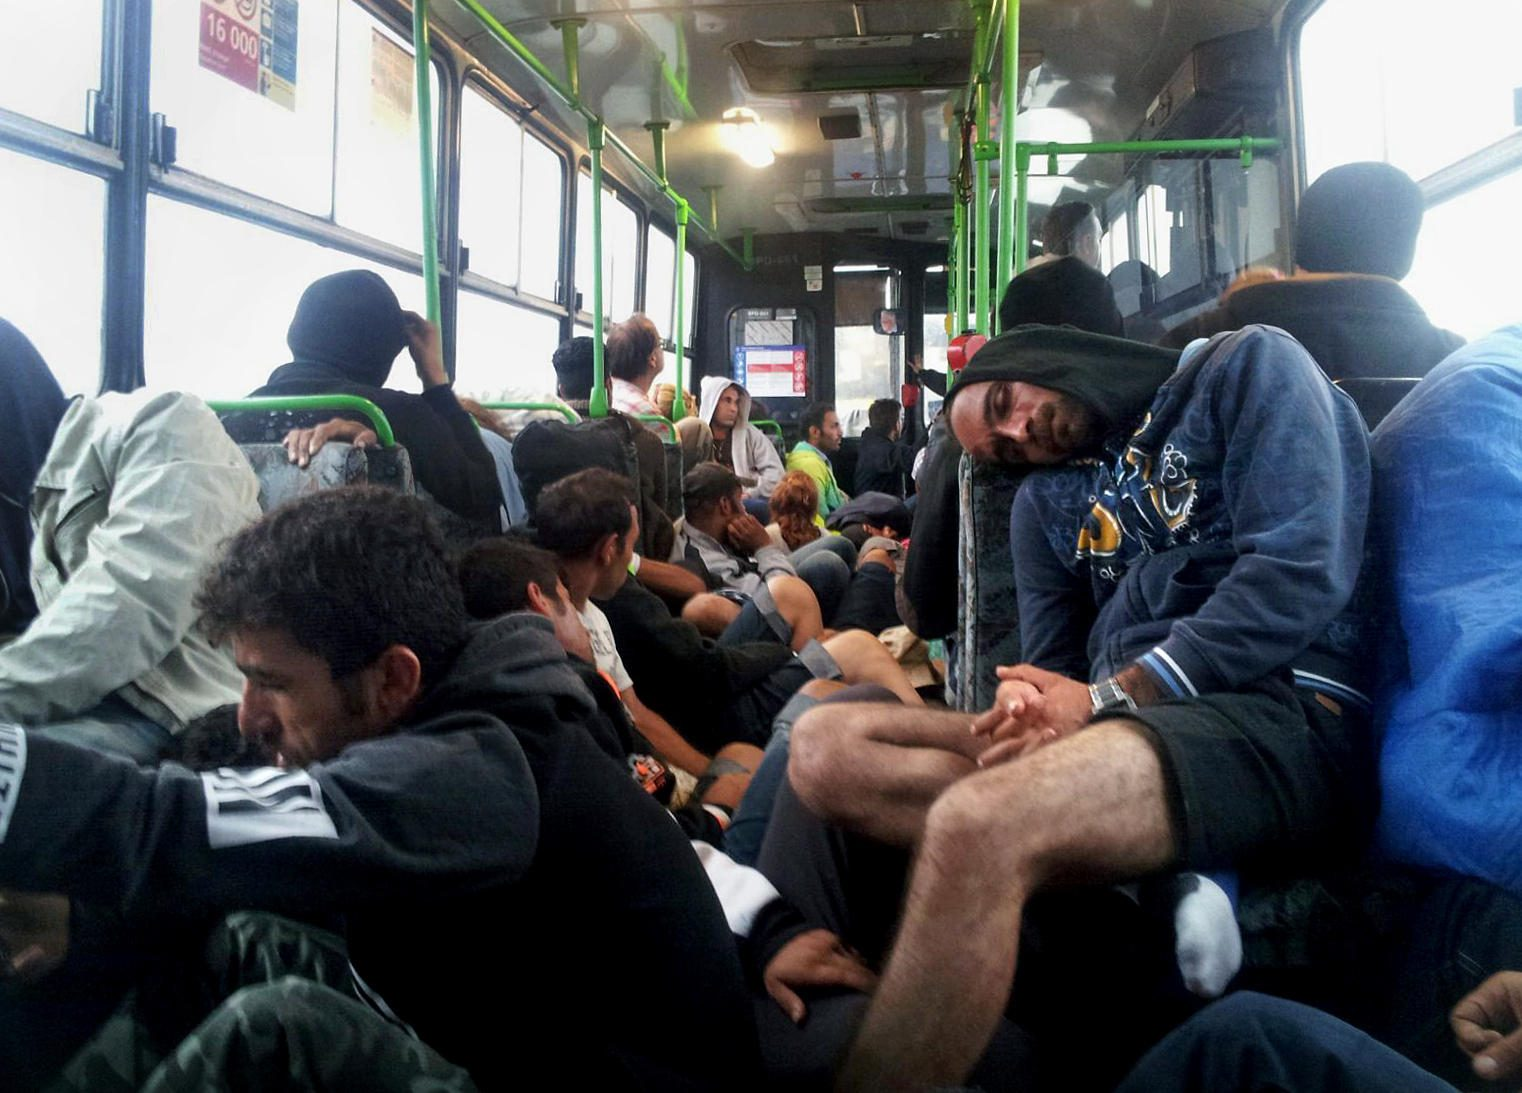 Exhausted refugees sleep on a bus to Vienna from Budapest. The bus was so crowded that Omar couldn't find a seat, and he crouched on the floor.